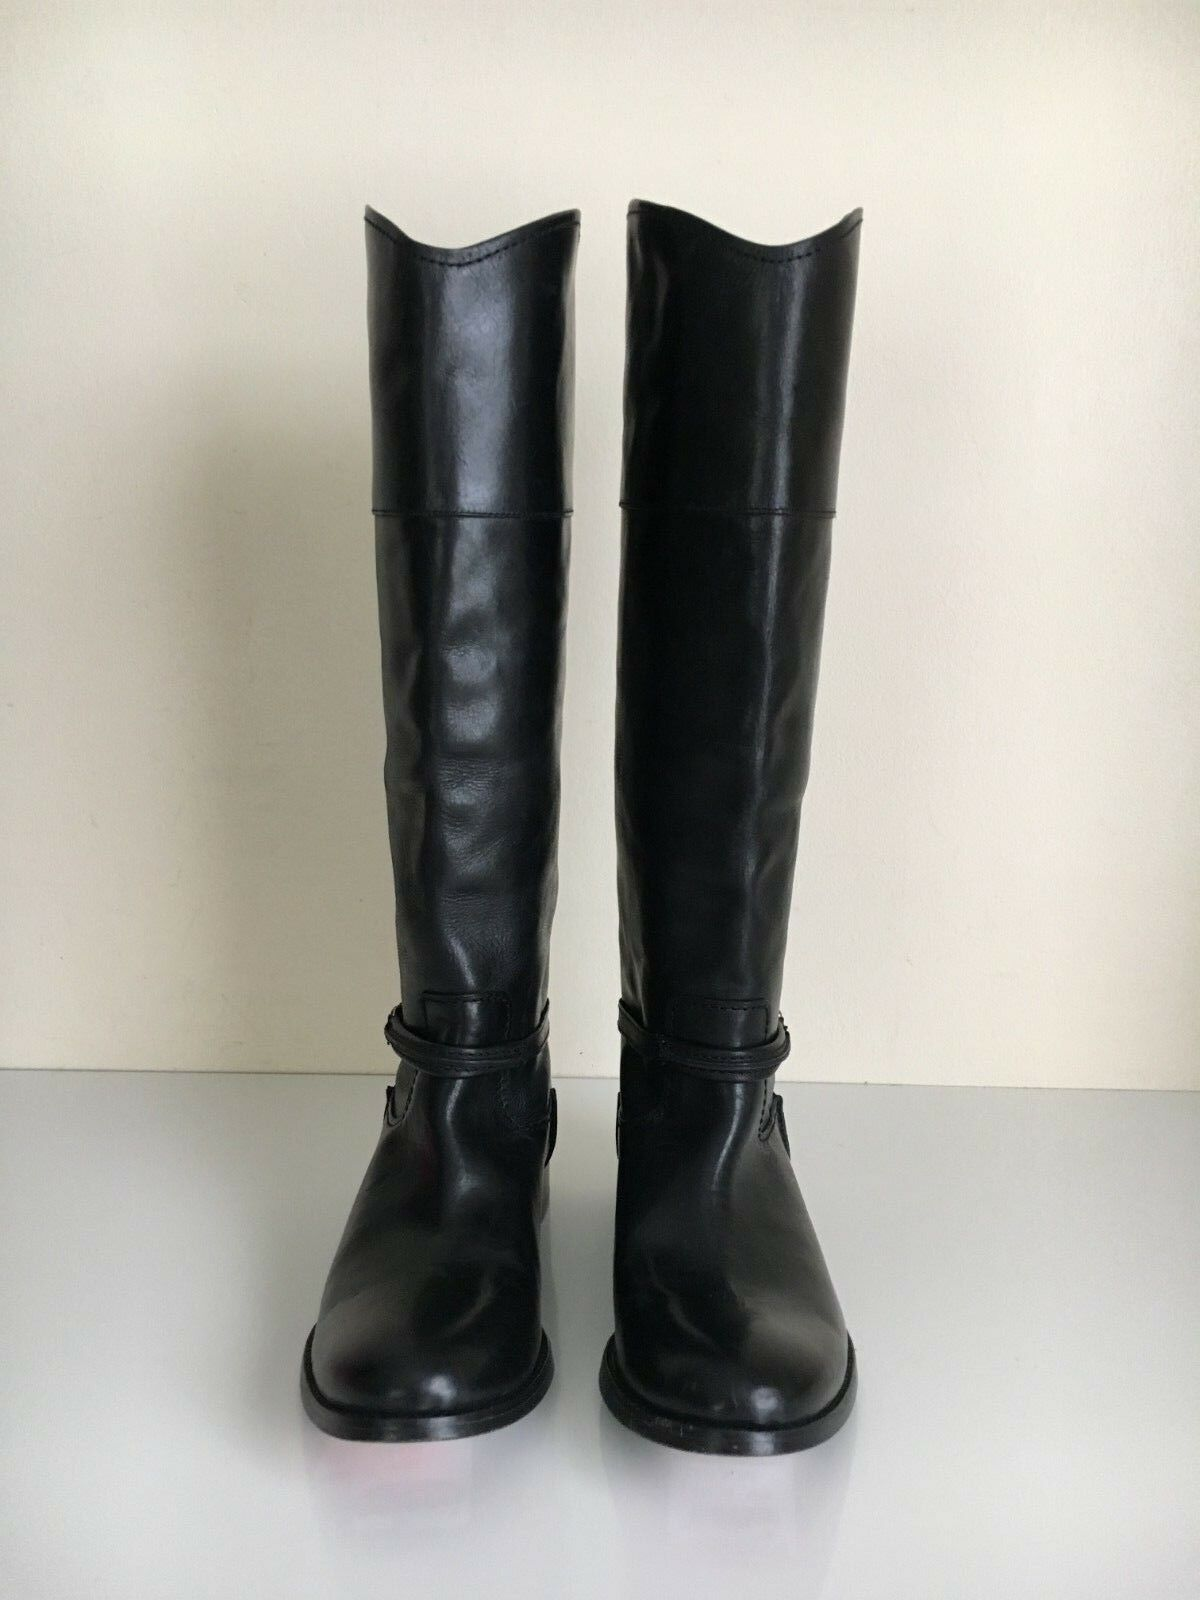 NEW Frye Sz 6 Strap Melissa Boots Black Riding Tall  458 Leather Pull Belted